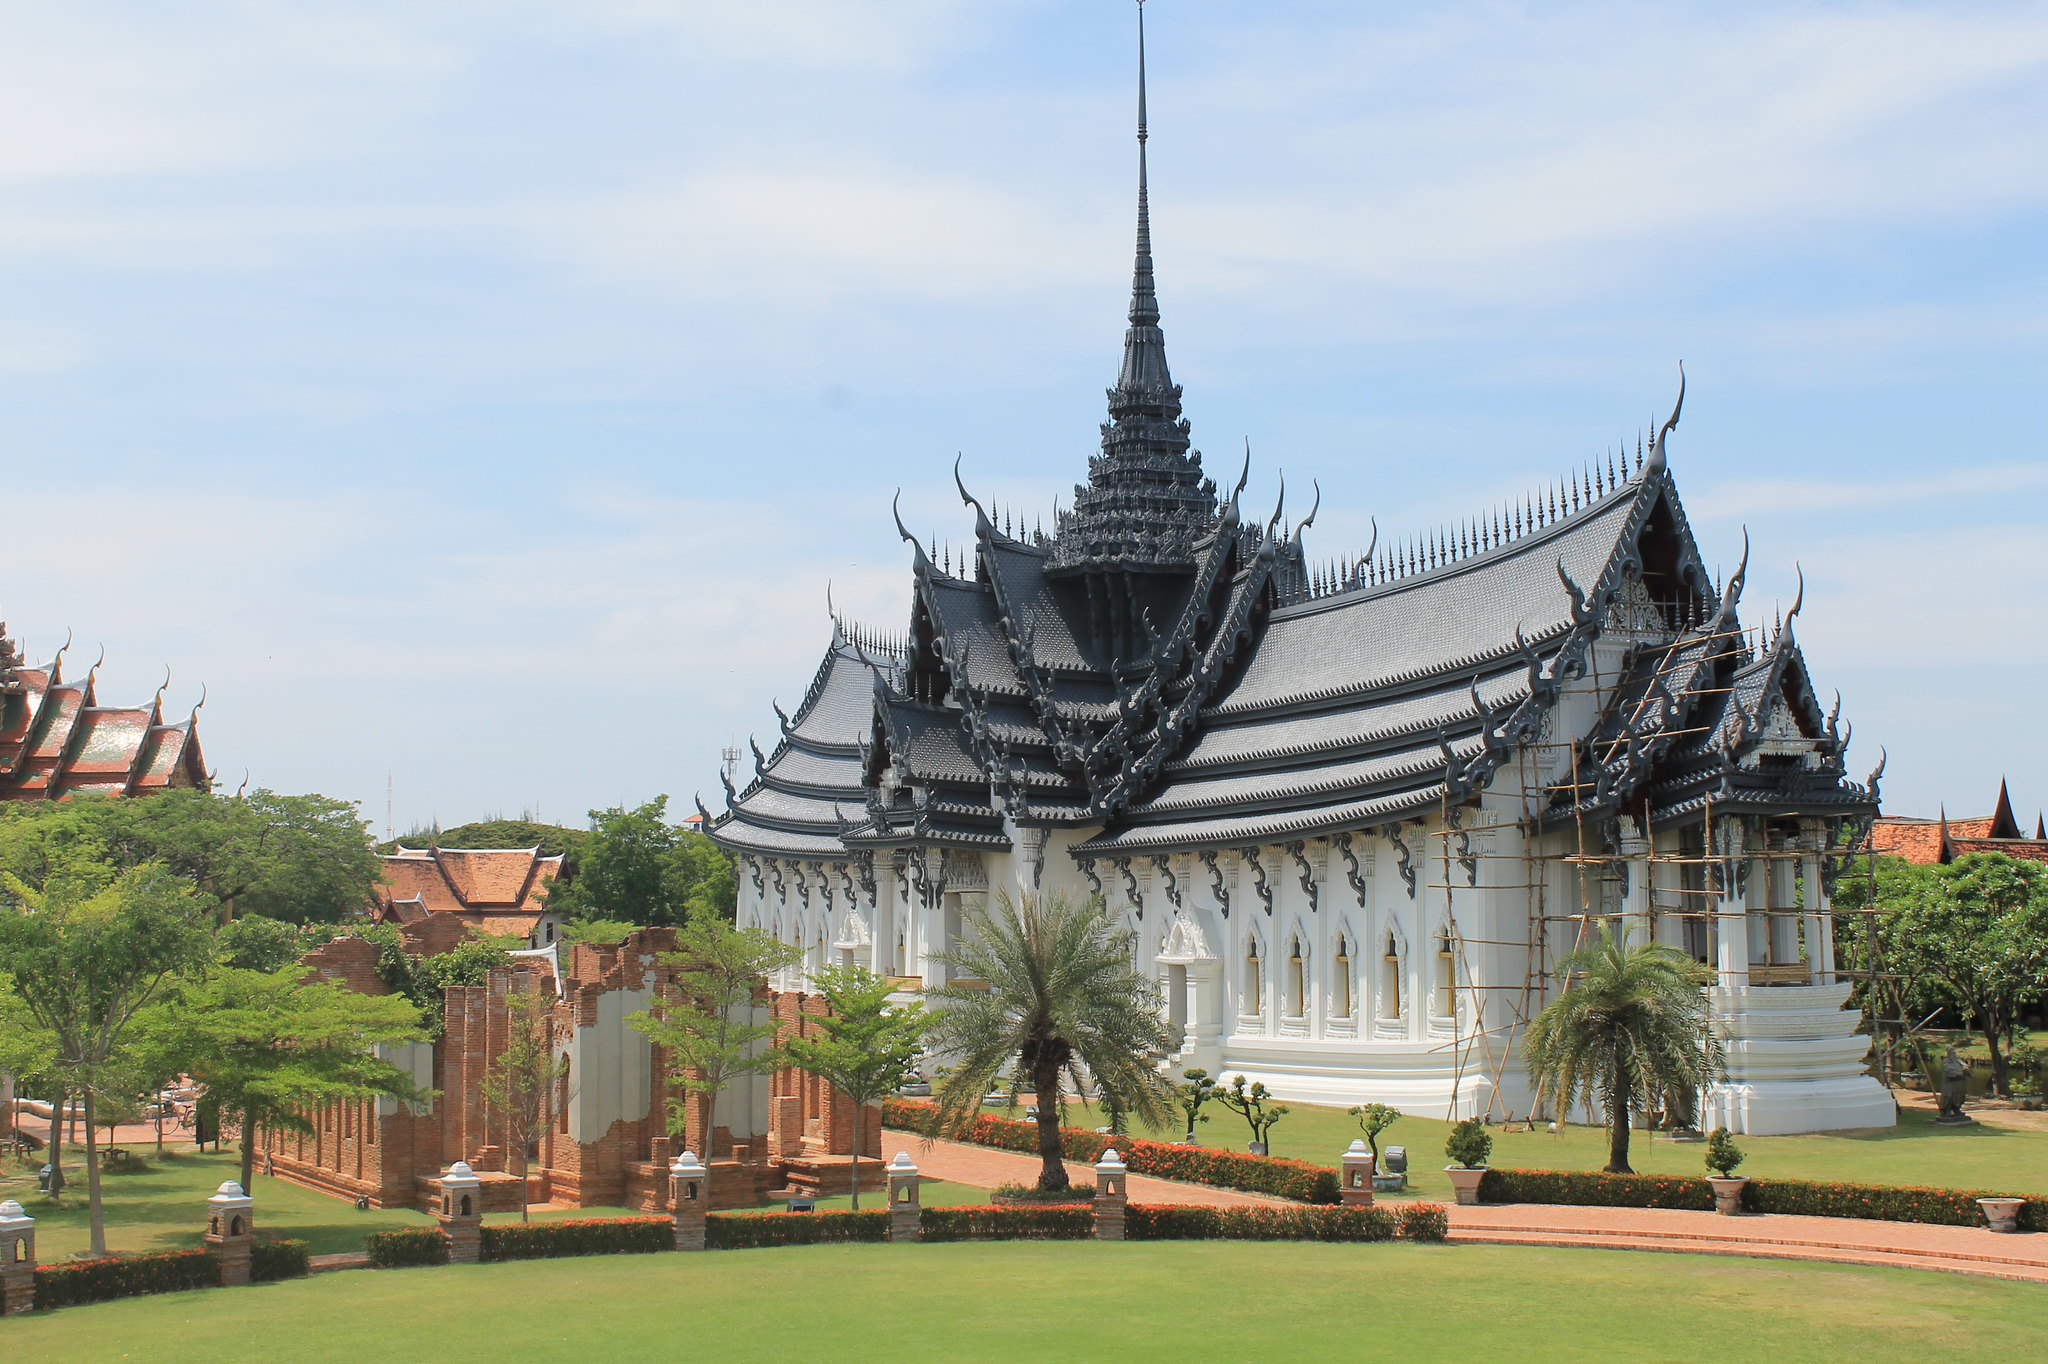 Thai architecture flickr photo sharing for Thailand architecture